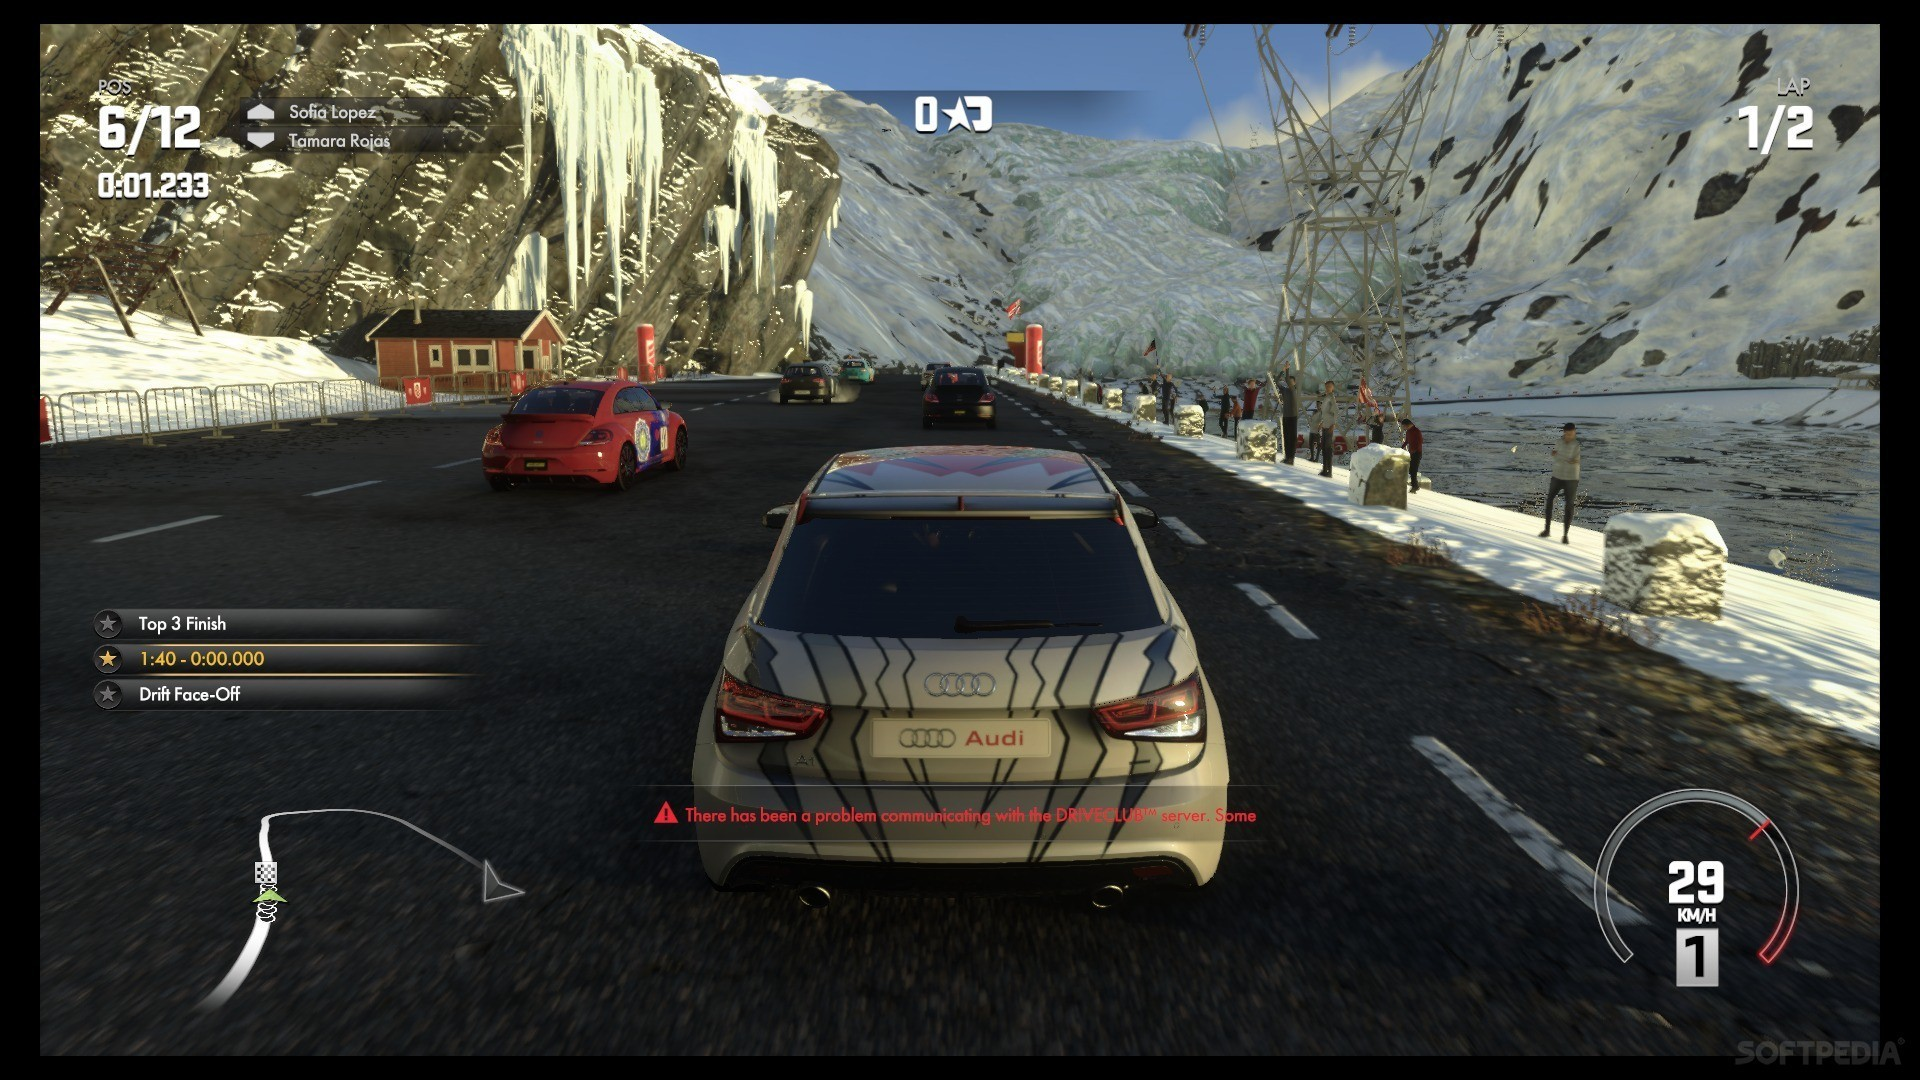 Driveclub Online Improvements and New Events Are Available ... on wasteland 2 map size, test drive unlimited 2 map size, burnout paradise map size, star citizen map size, forza horizon map size, the crew map size, destiny map size, minecraft map size,